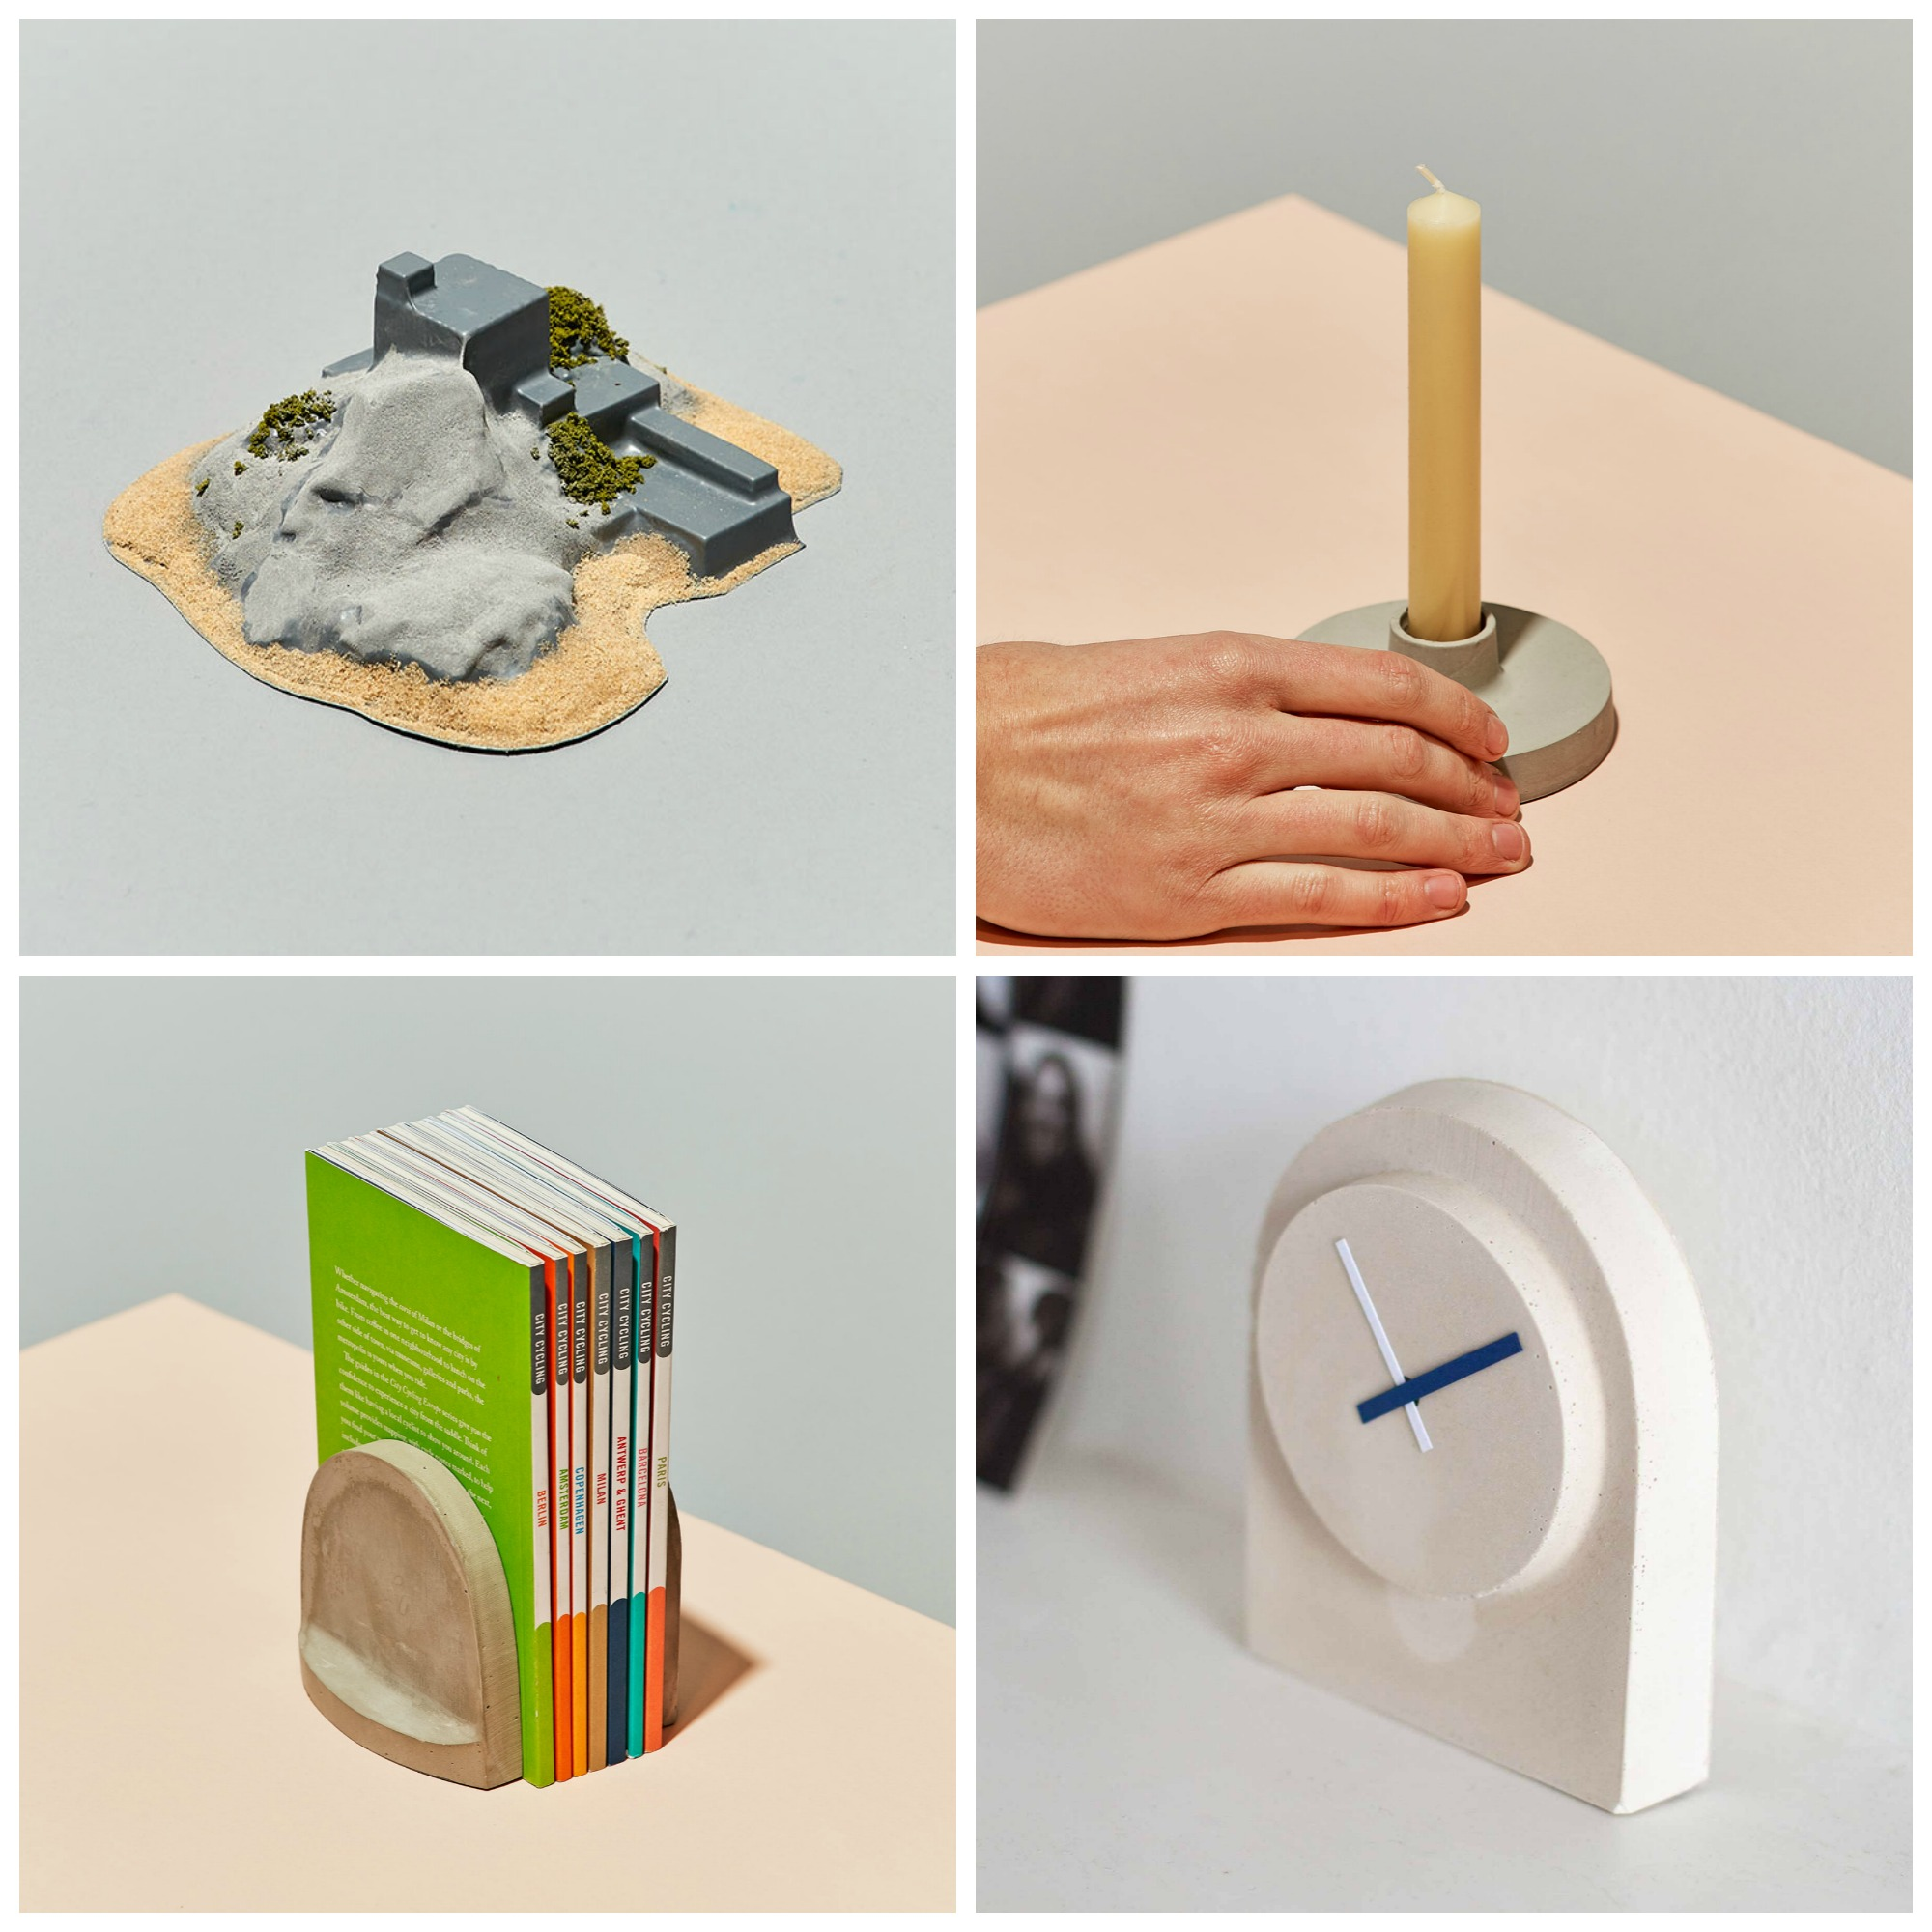 FormBox objects collage - http://weirdatheart.com/friday-favorite-formbox/